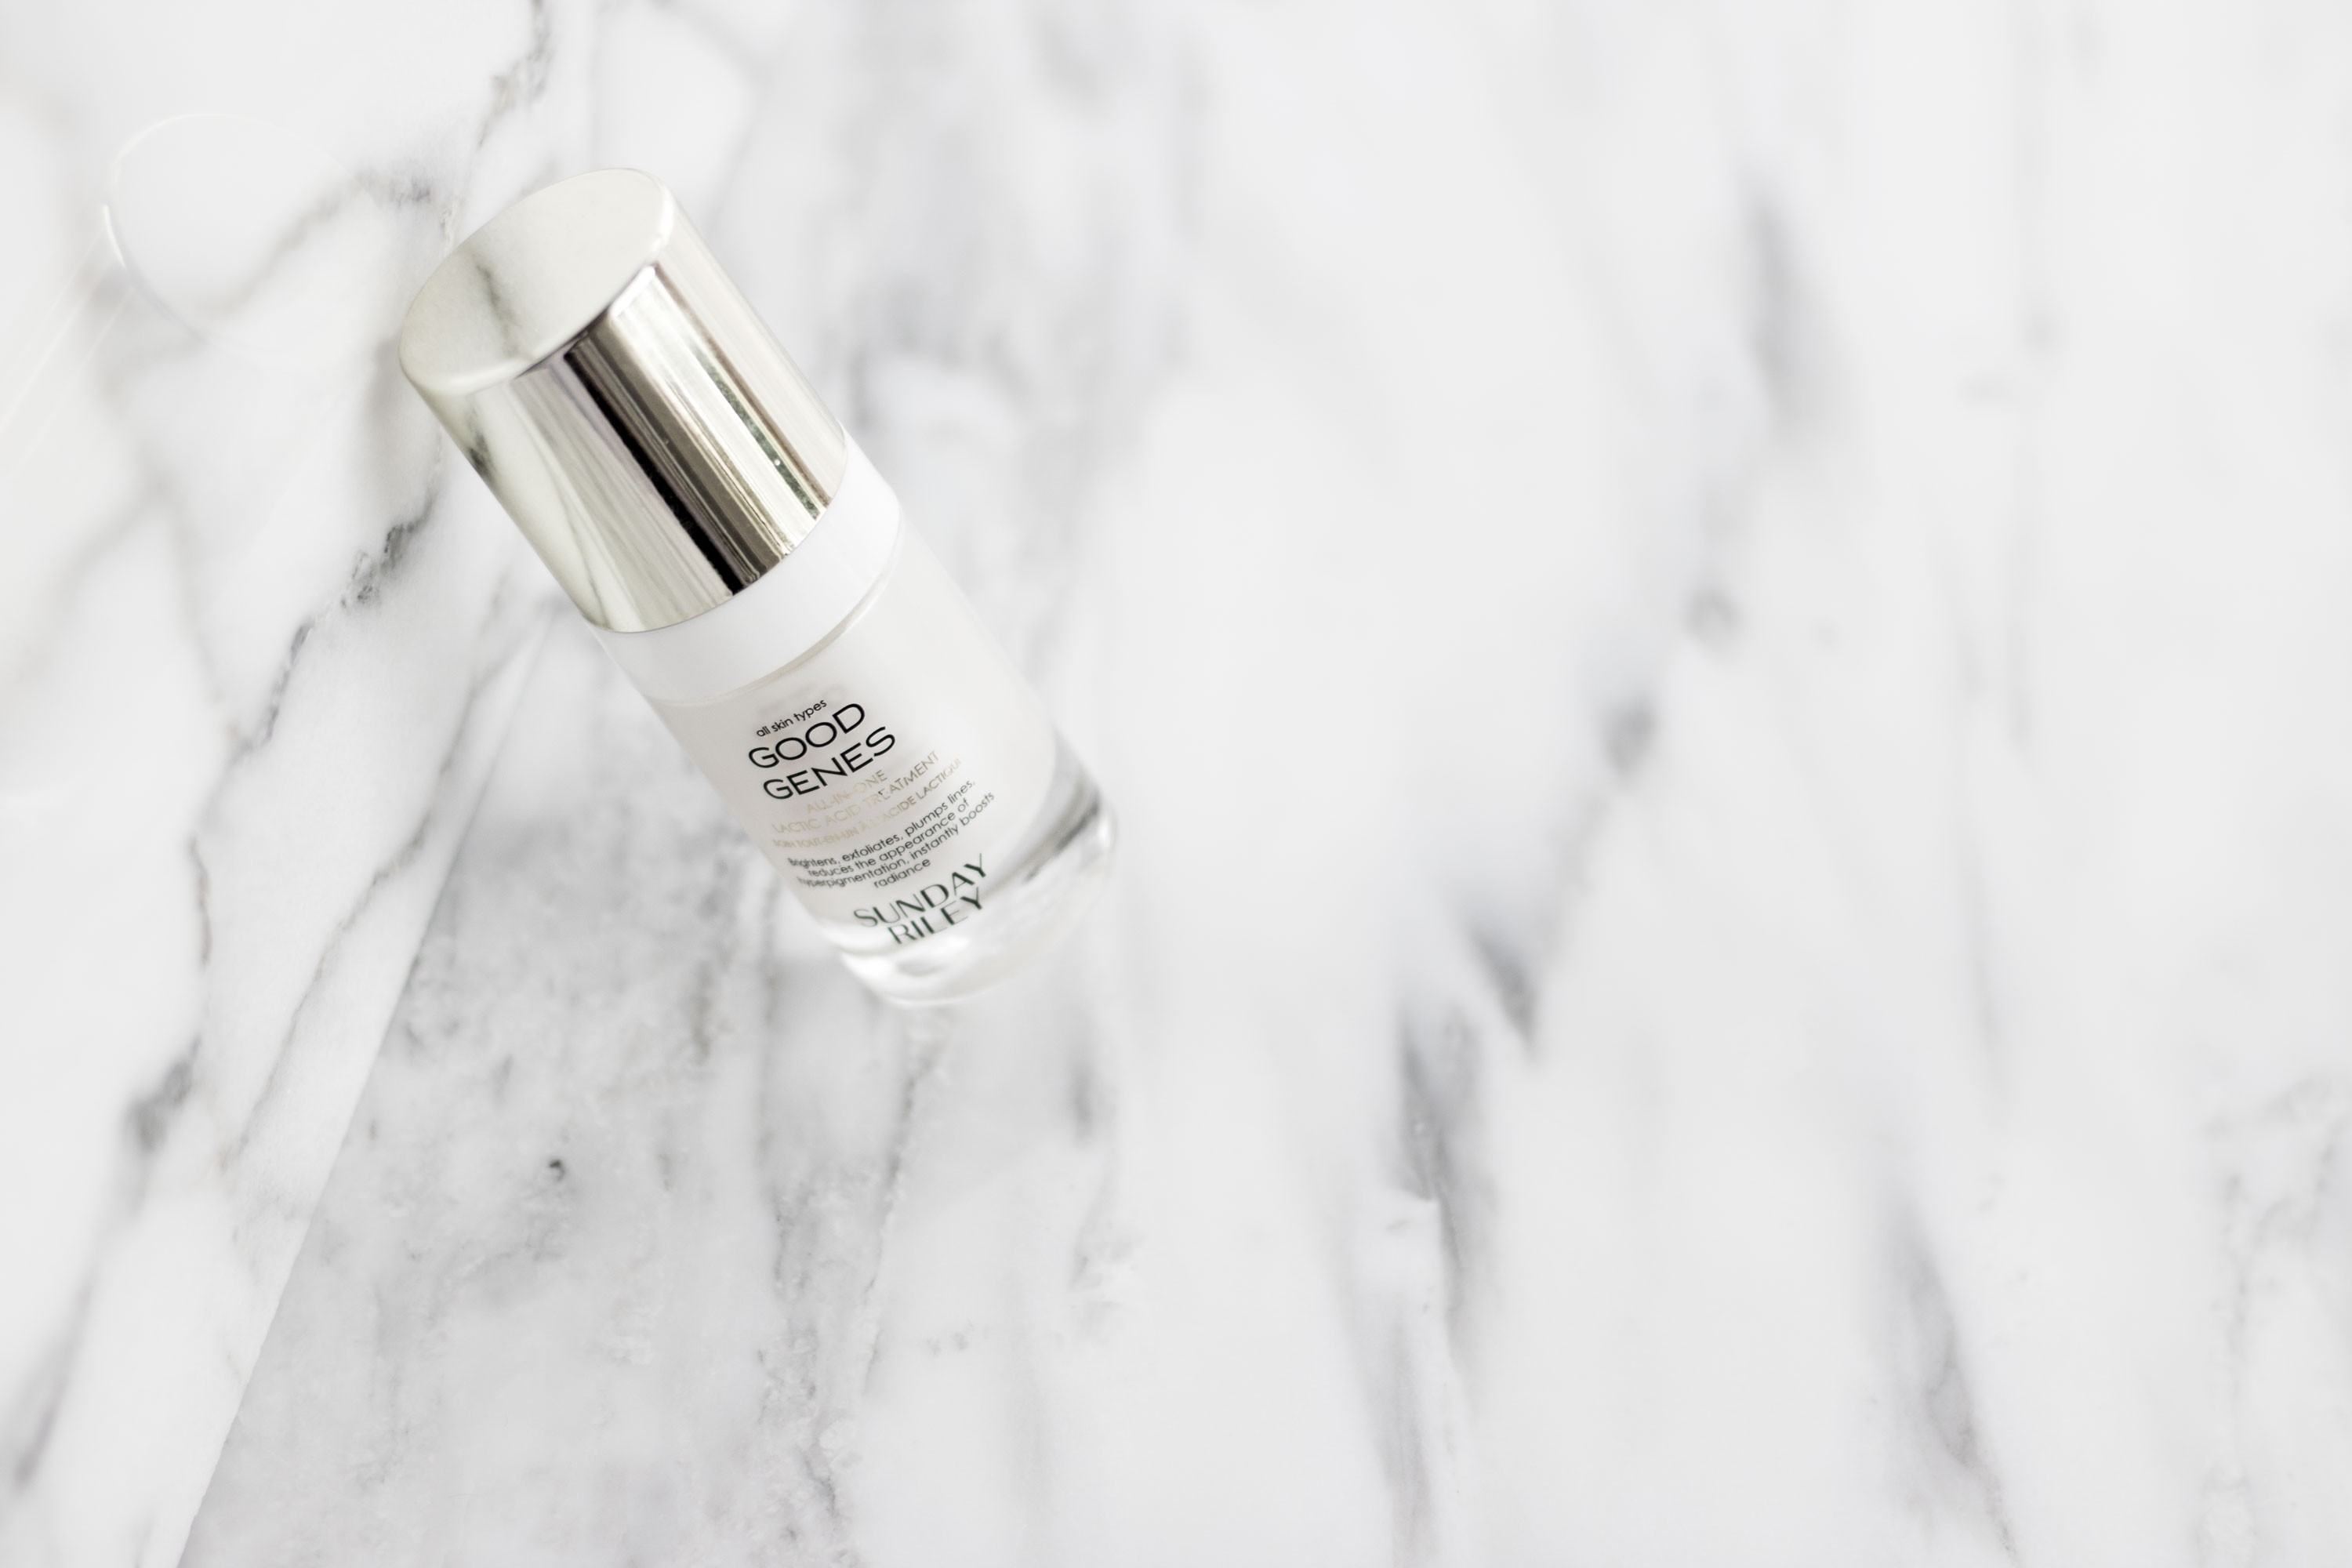 cult beauty products worth the cult status- Sunday Riley Good Genes lactic acid